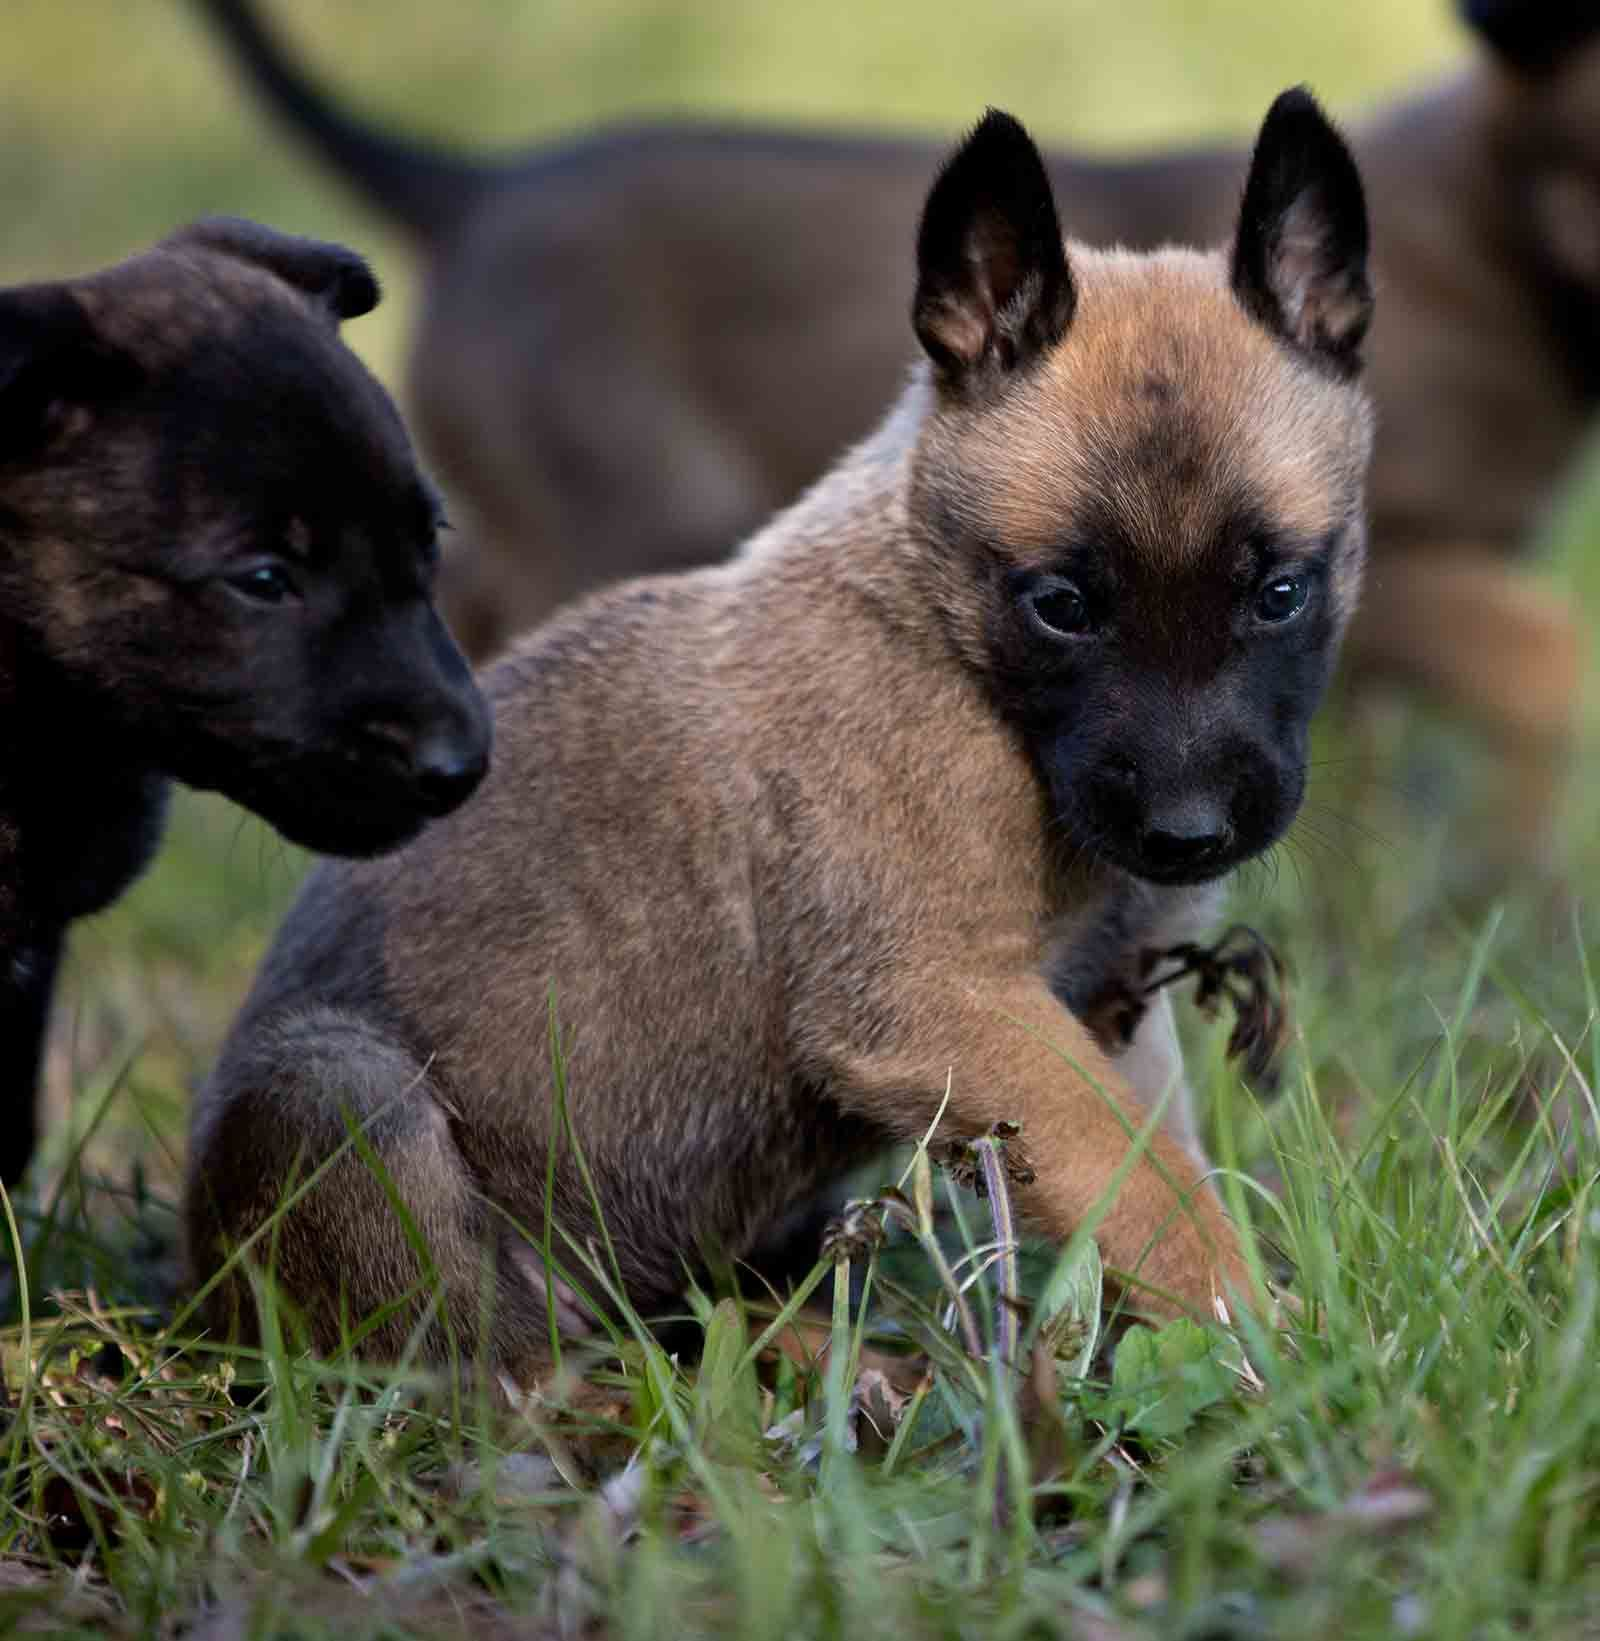 Moss K9 Dutch Shepherd Malinois Puppies For Sale Breeder Malinois Puppies Belgian Malinois Puppies Malinois Puppies For Sale